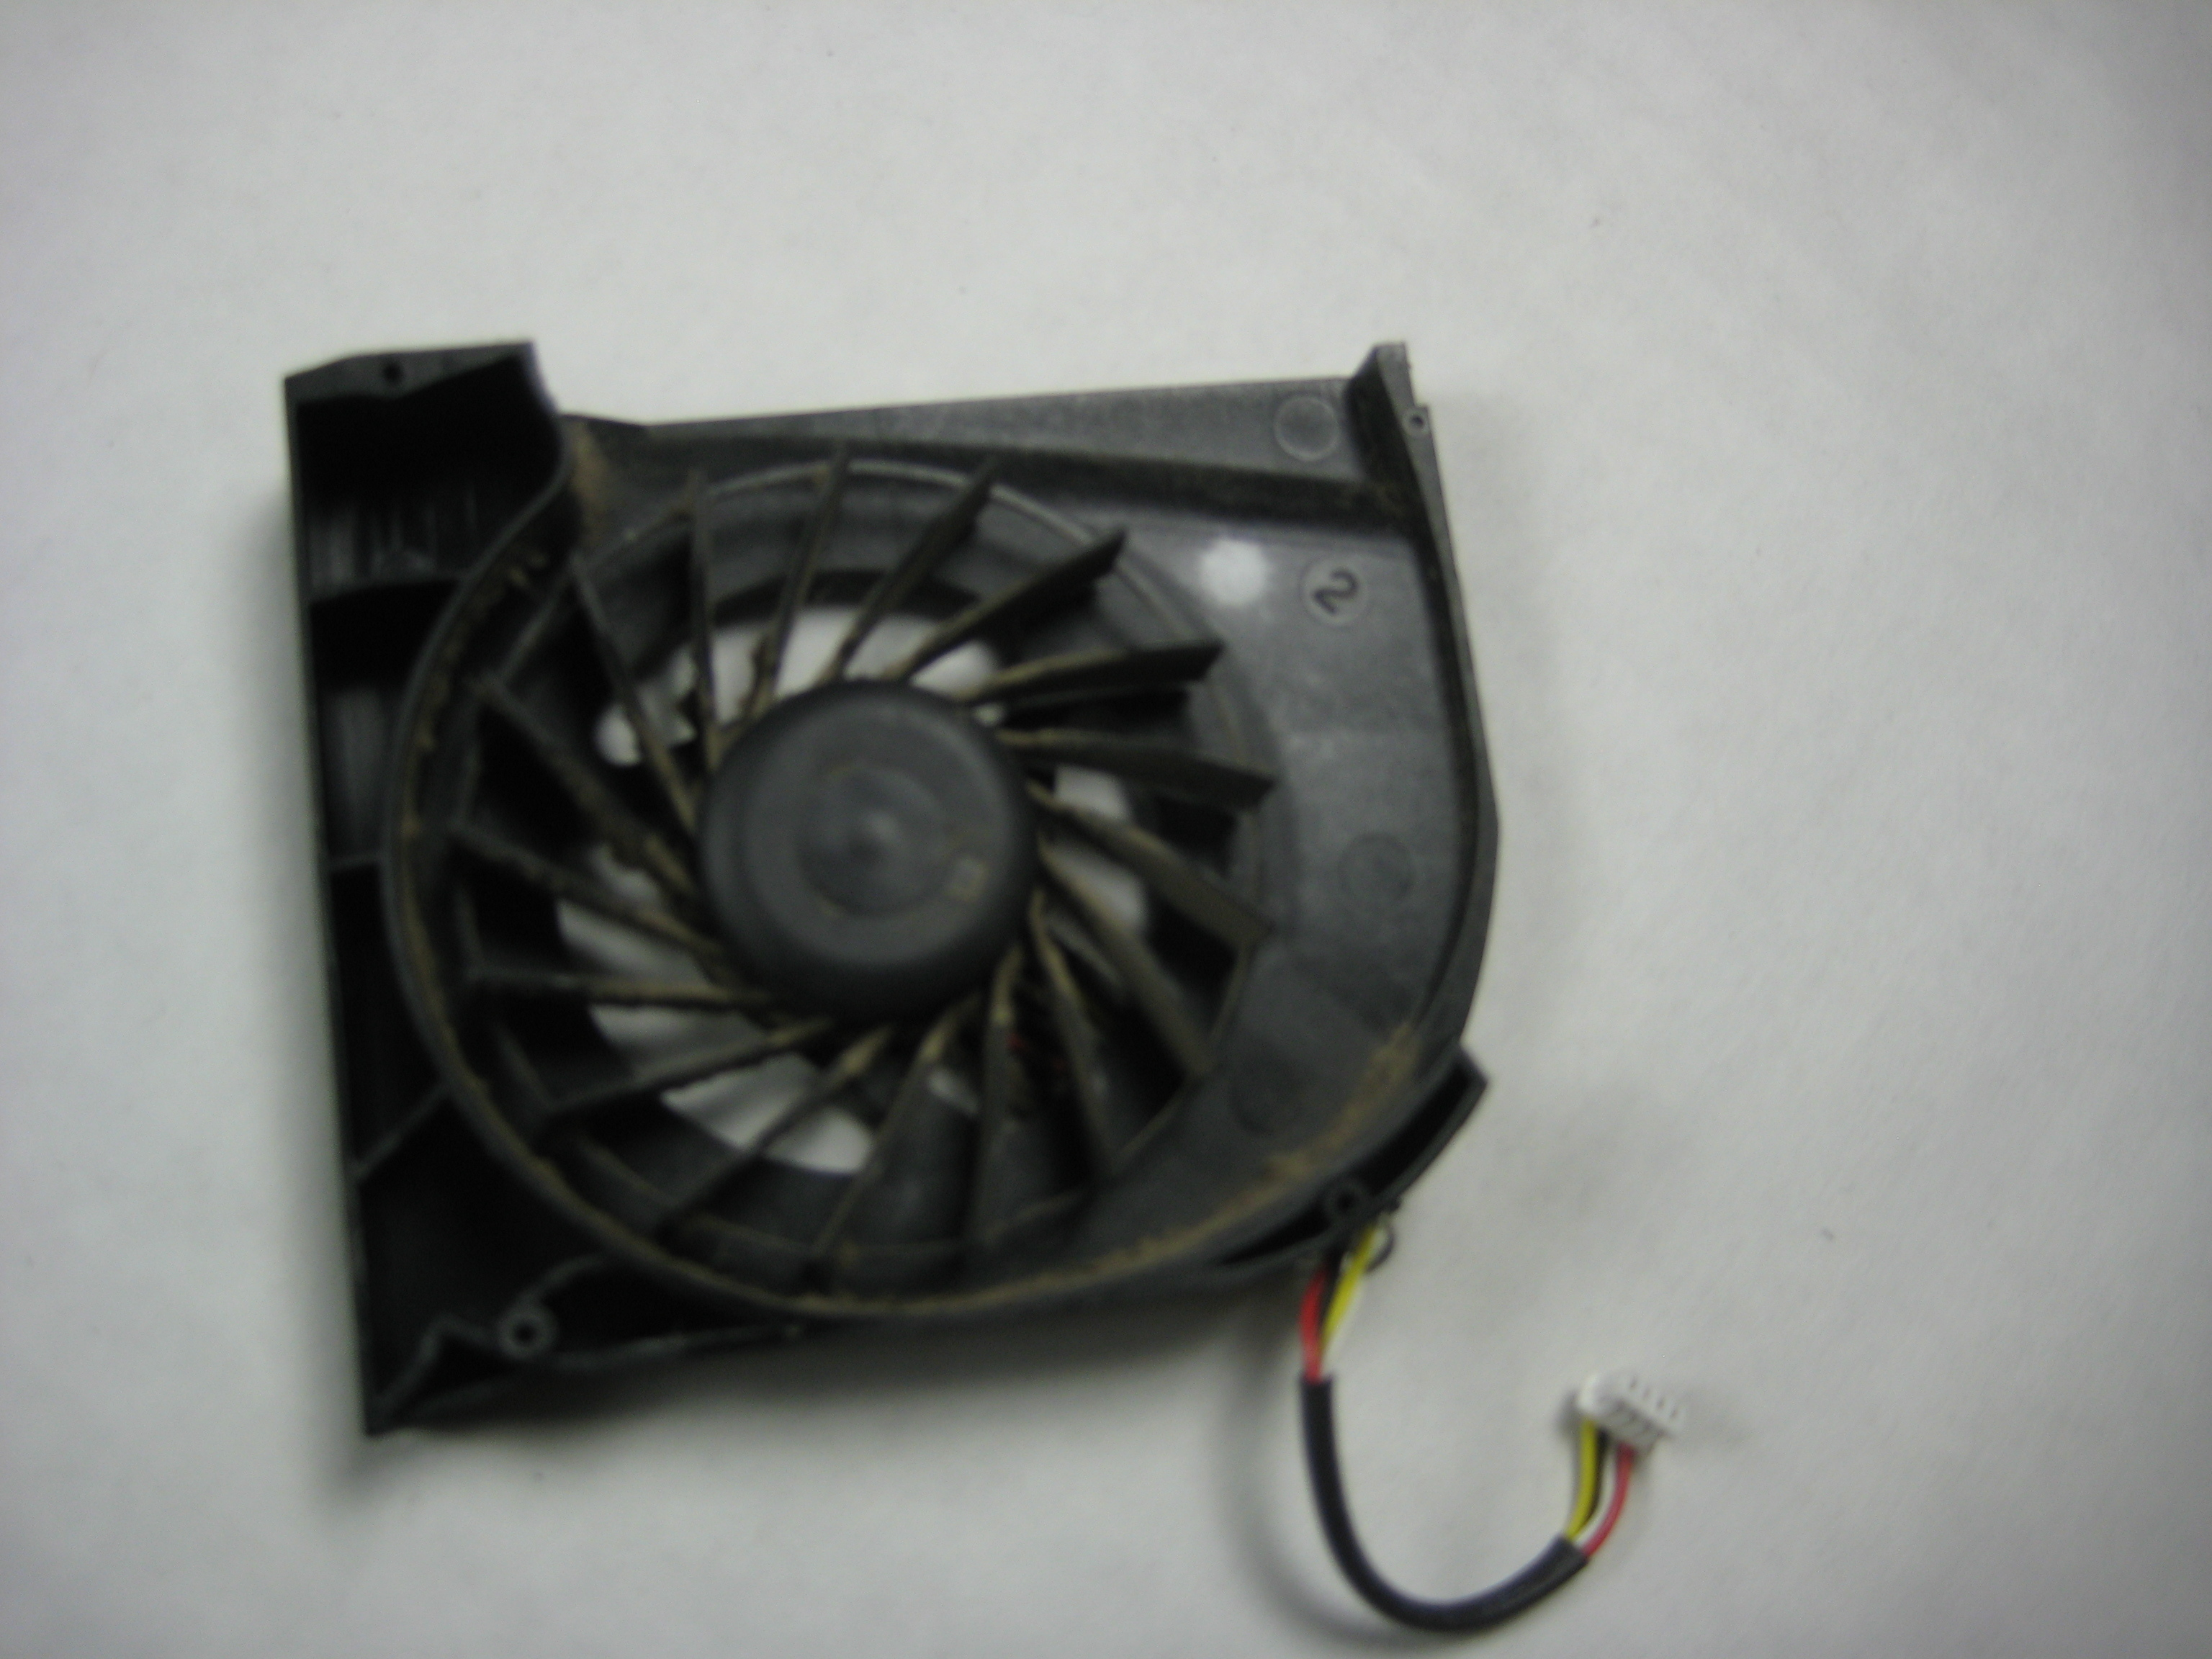 Hp Pavilion Dv6000 Fan Replacement Ifixit Repair Guide Electric Switch Wiring